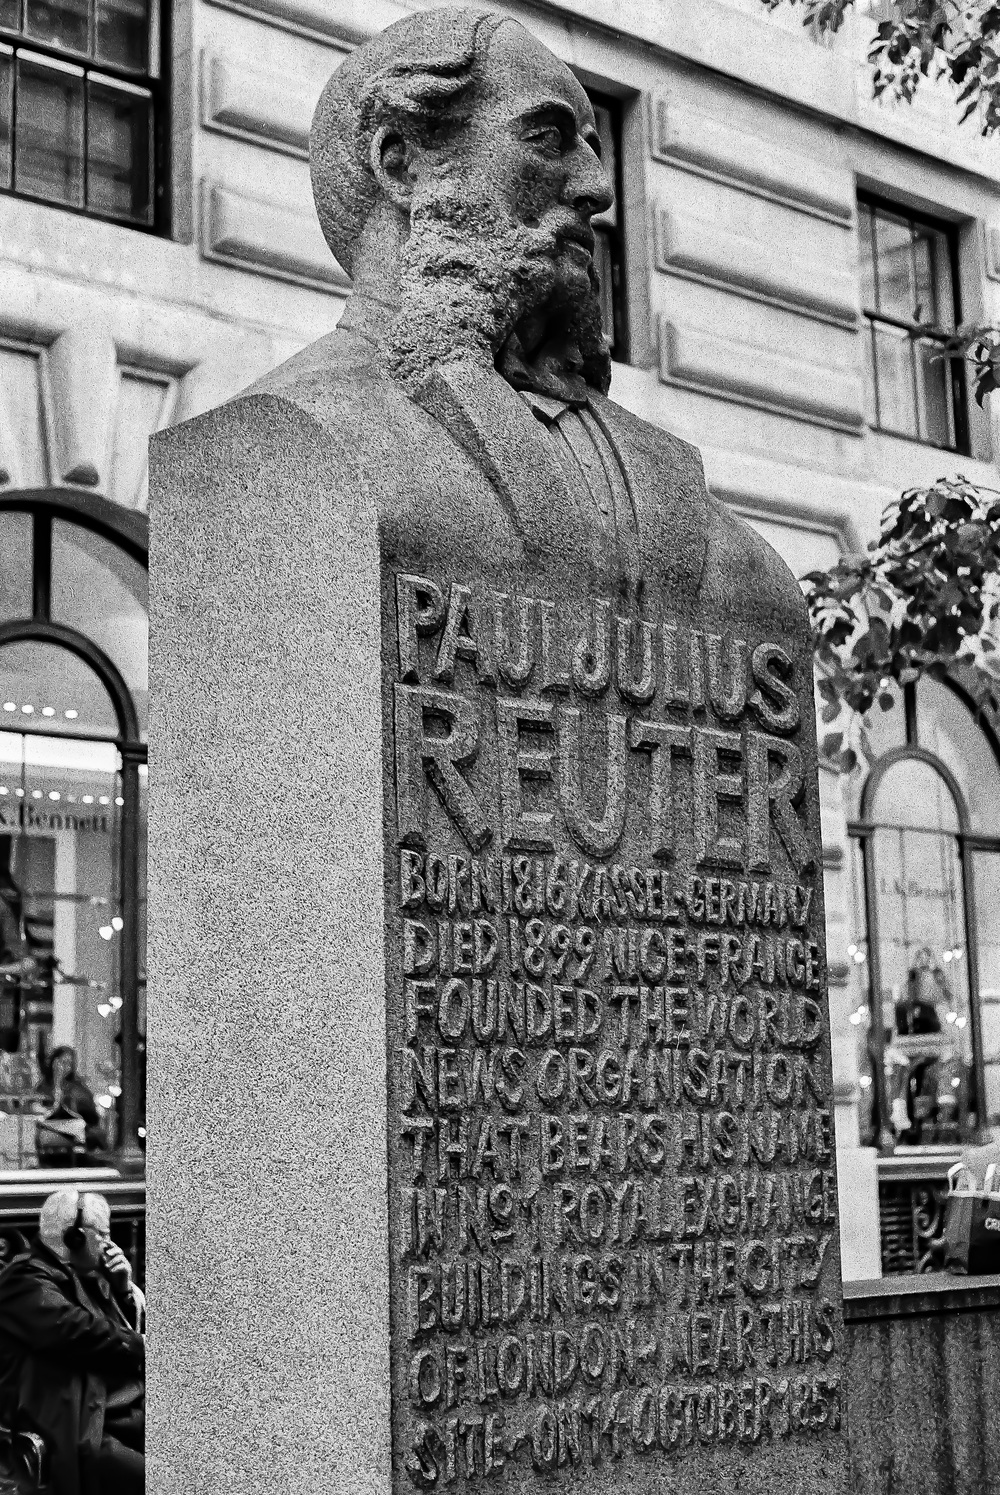 Paul Julius Reuter, father of the news agency and a fitting complement to Leica's new Royal Exchange store in London: It is right opposite the door. Taken with my Leica M4-P and late (1996) collapsible f/2.8 Elmar on Tri-X. The statue is naturally grainy, it's not the film..